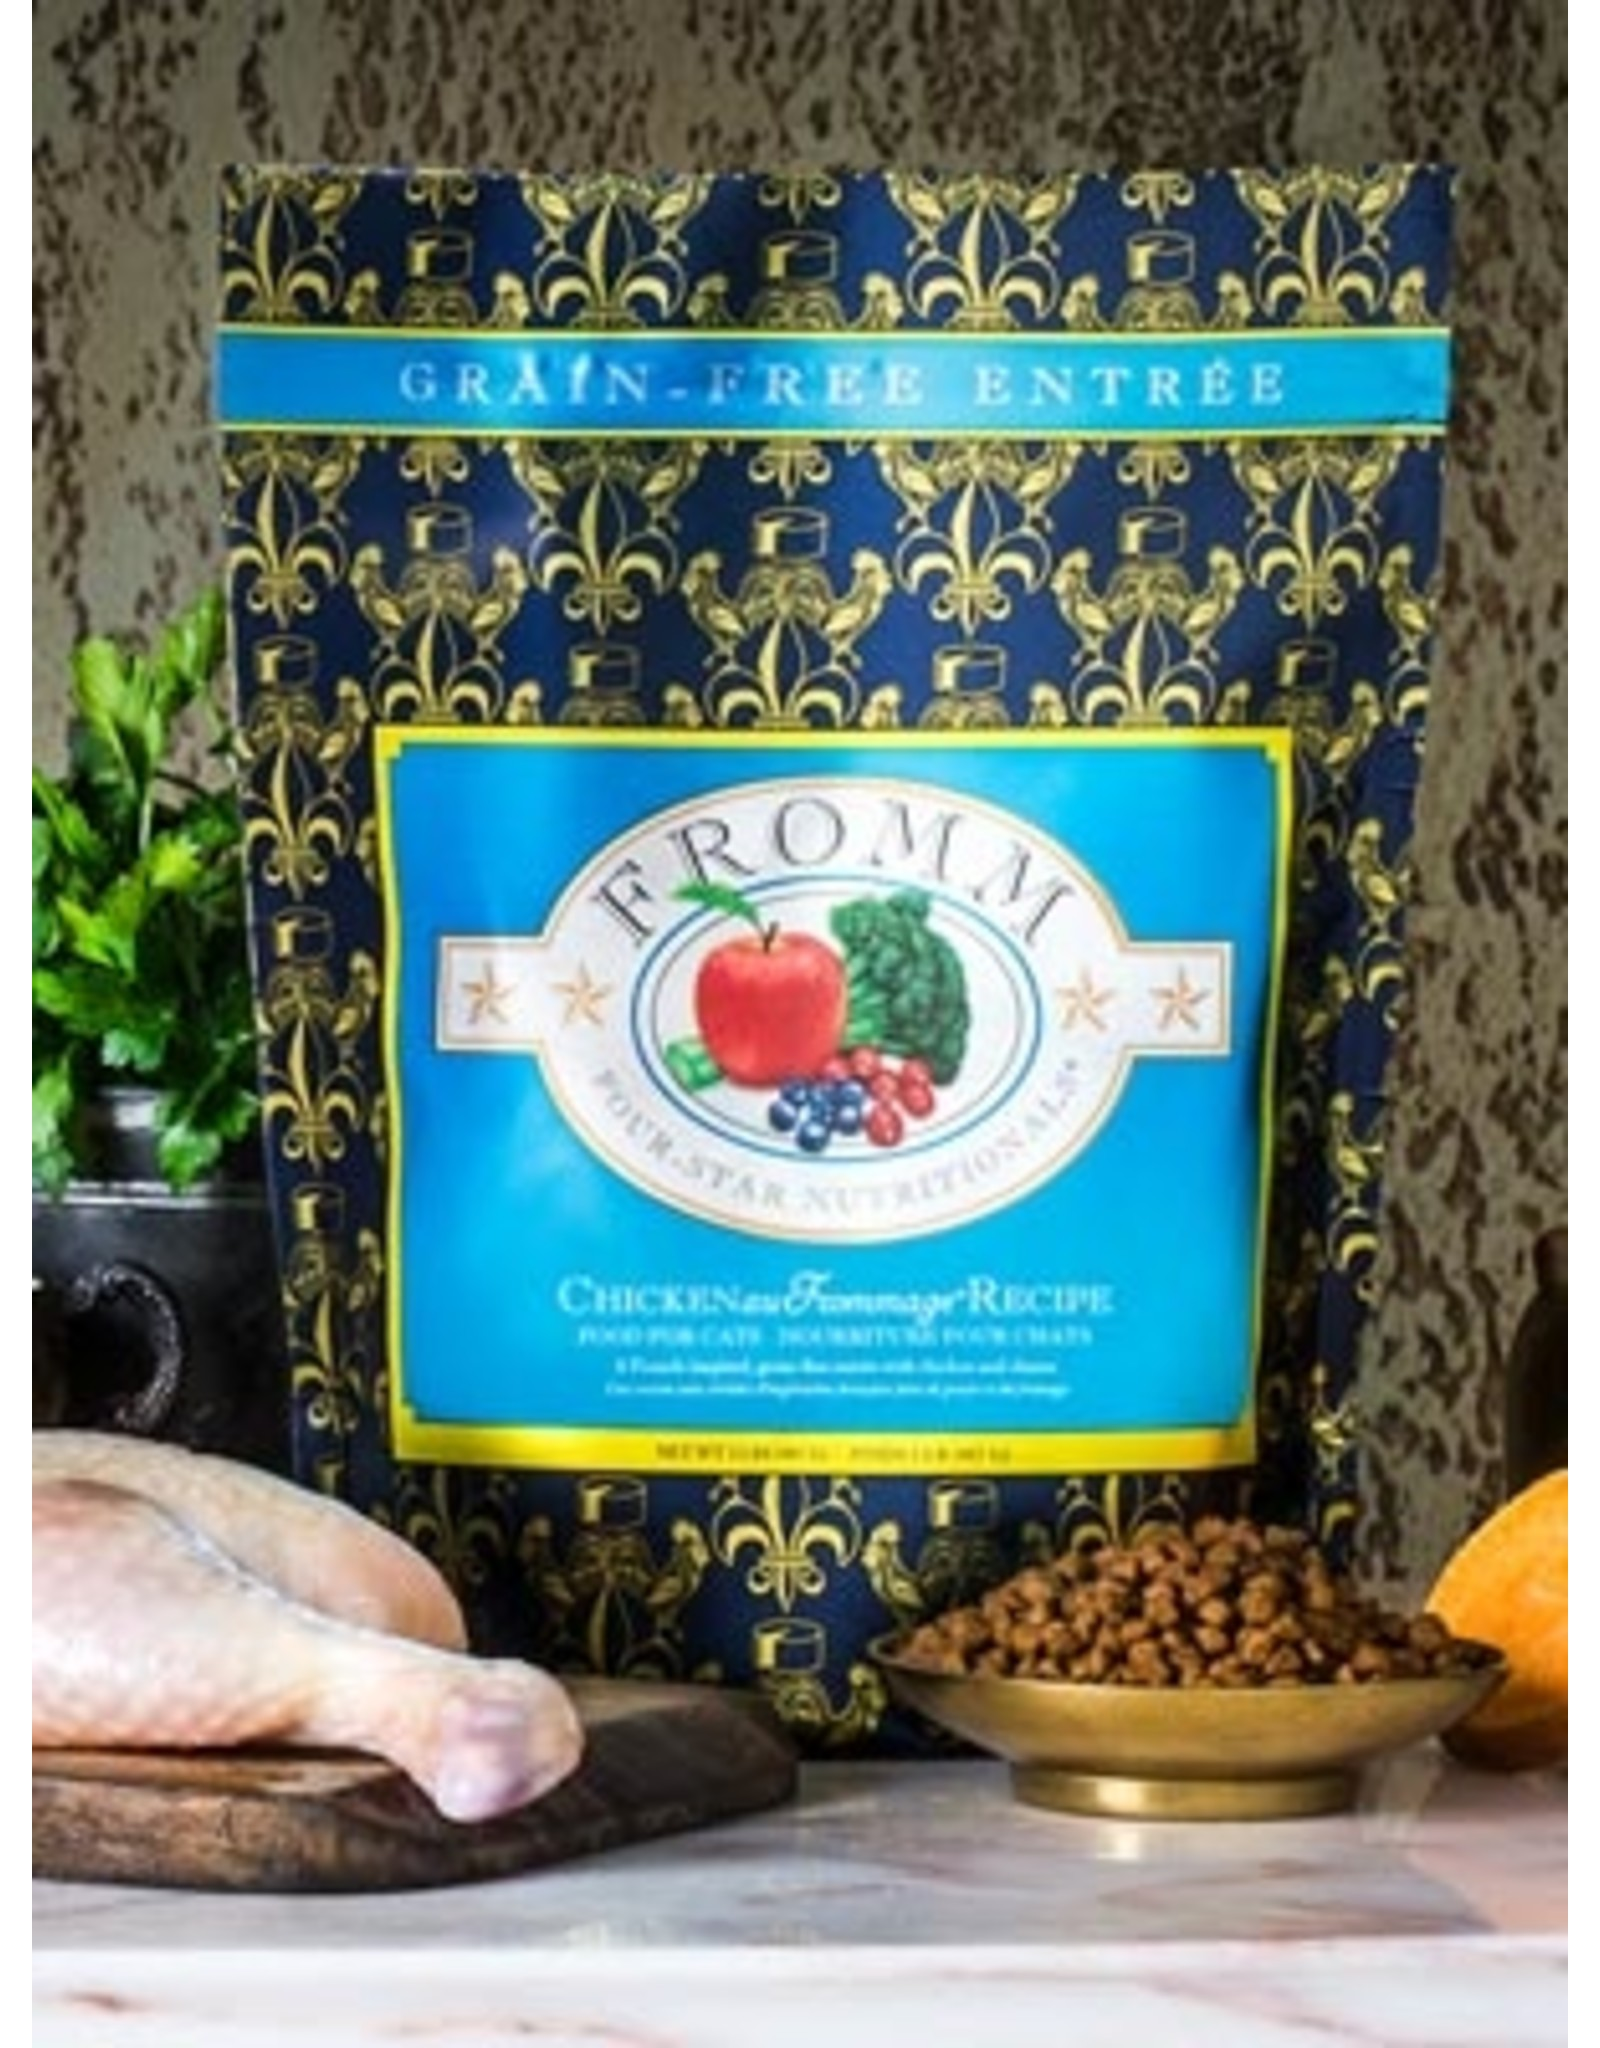 Fromm Fromm Dry Cat Food 4Star Nutritionals Chicken au Frommage Recipe Chicken, Cheese, & Fruits & Vegetables Grain Free